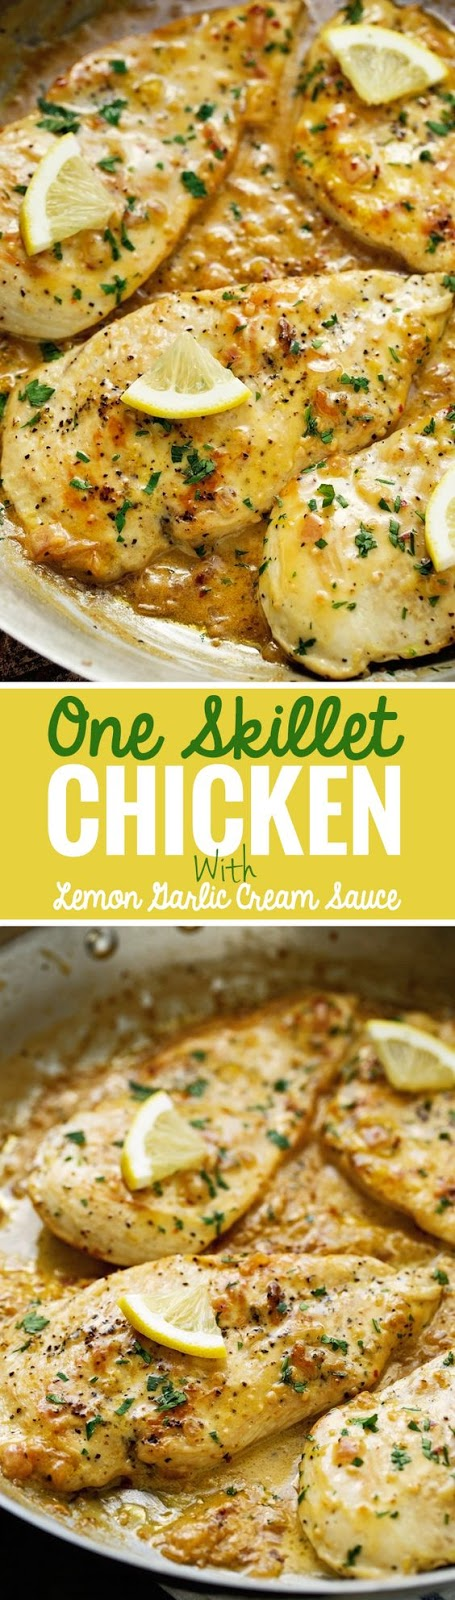 ONE SKILLET CHICKEN GARLIC CREAM SAUCE #SKILLET #CHICKEN #GARLIC #CREAM #SAUCE    #DESSERTS #HEALTHYFOOD #EASY_RECIPES #DINNER #LAUCH #DELICIOUS #EASY #HOLIDAYS #RECIPE #SPECIAL_DIET #WORLD_CUISINE #CAKE #GRILL #APPETIZERS #HEALTHY_RECIPES #DRINKS #COOKING_METHOD #ITALIAN_RECIPES #MEAT #VEGAN_RECIPES #COOKIES #PASTA #FRUIT #SALAD #SOUP_APPETIZERS #NON_ALCOHOLIC_DRINKS #MEAL_PLANNING #VEGETABLES #SOUP #PASTRY #CHOCOLATE #DAIRY #ALCOHOLIC_DRINKS #BULGUR_SALAD #BAKING #SNACKS #BEEF_RECIPES #MEAT_APPETIZERS #MEXICAN_RECIPES #BREAD #ASIAN_RECIPES #SEAFOOD_APPETIZERS #MUFFINS #BREAKFAST_AND_BRUNCH #CONDIMENTS #CUPCAKES #CHEESE #CHICKEN_RECIPES #PIE #COFFEE #NO_BAKE_DESSERTS #HEALTHY_SNACKS #SEAFOOD #GRAIN #LUNCHES_DINNERS #MEXICAN #QUICK_BREAD #LIQUOR